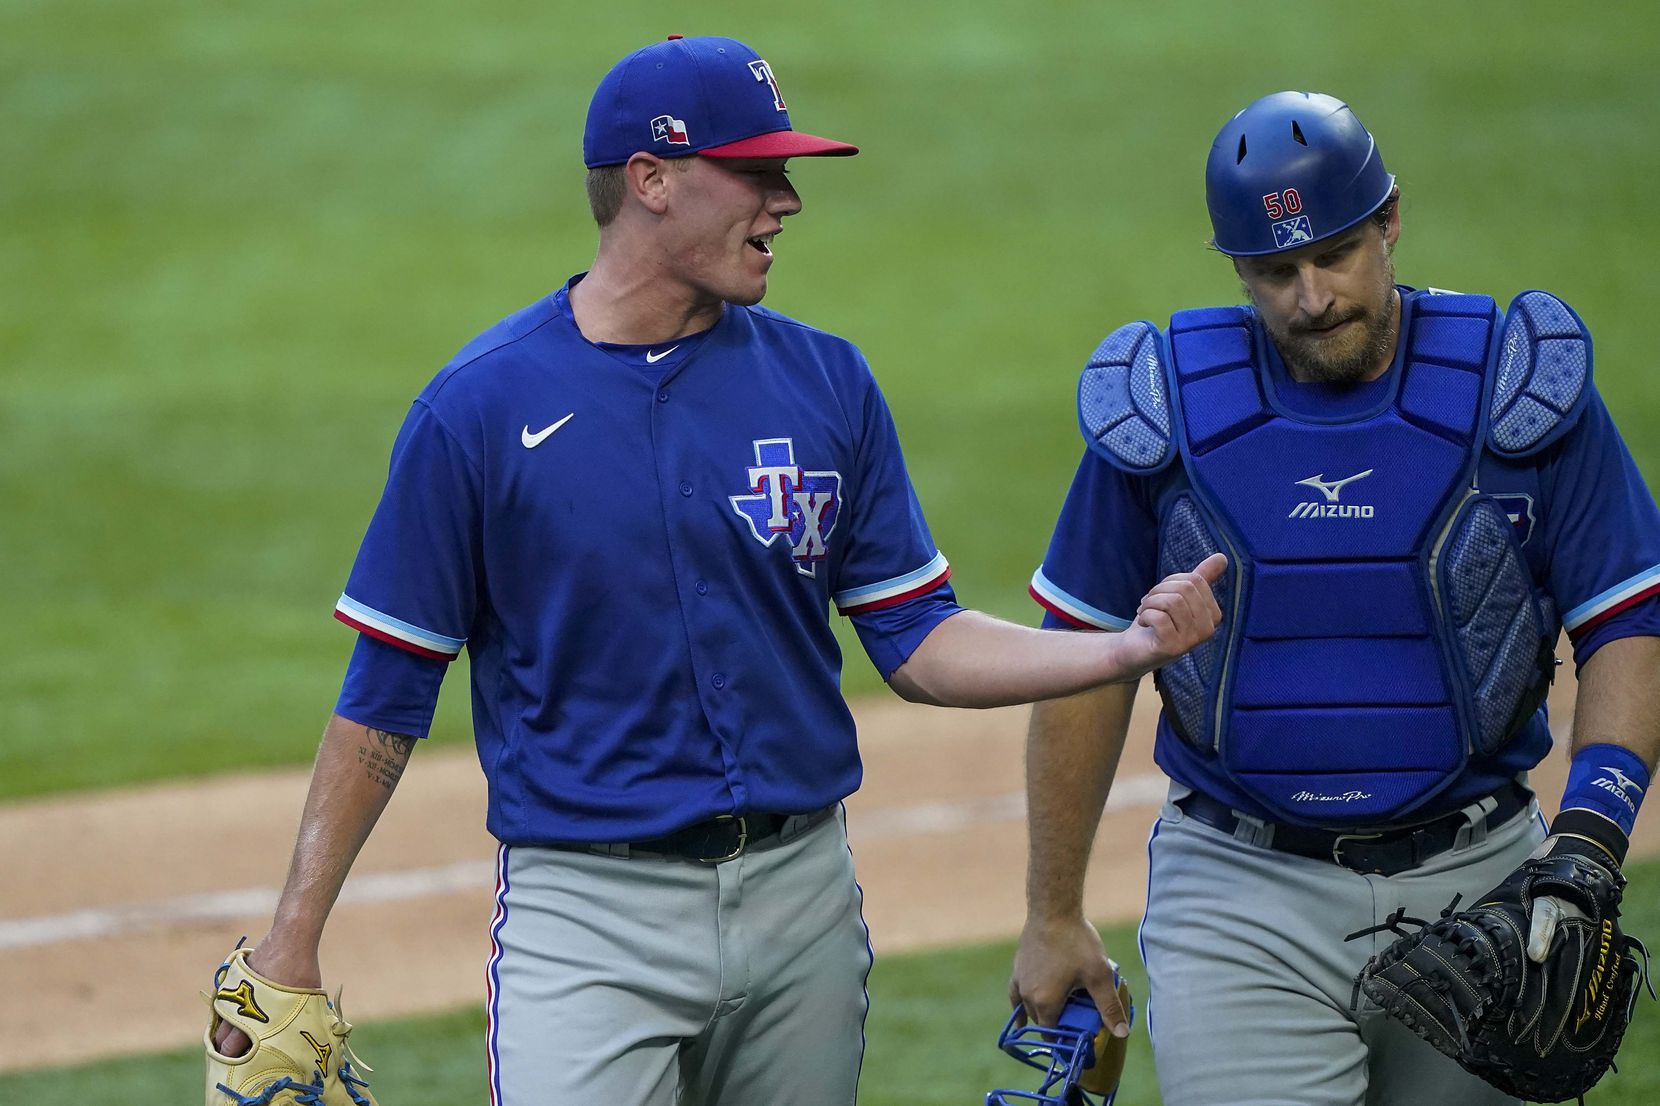 Kolby Allard talks with catcher Tim Federowicz after pitchring in an intrasquad game during Texas Rangers Summer Camp at Globe Life Field on Friday, July 17, 2020.